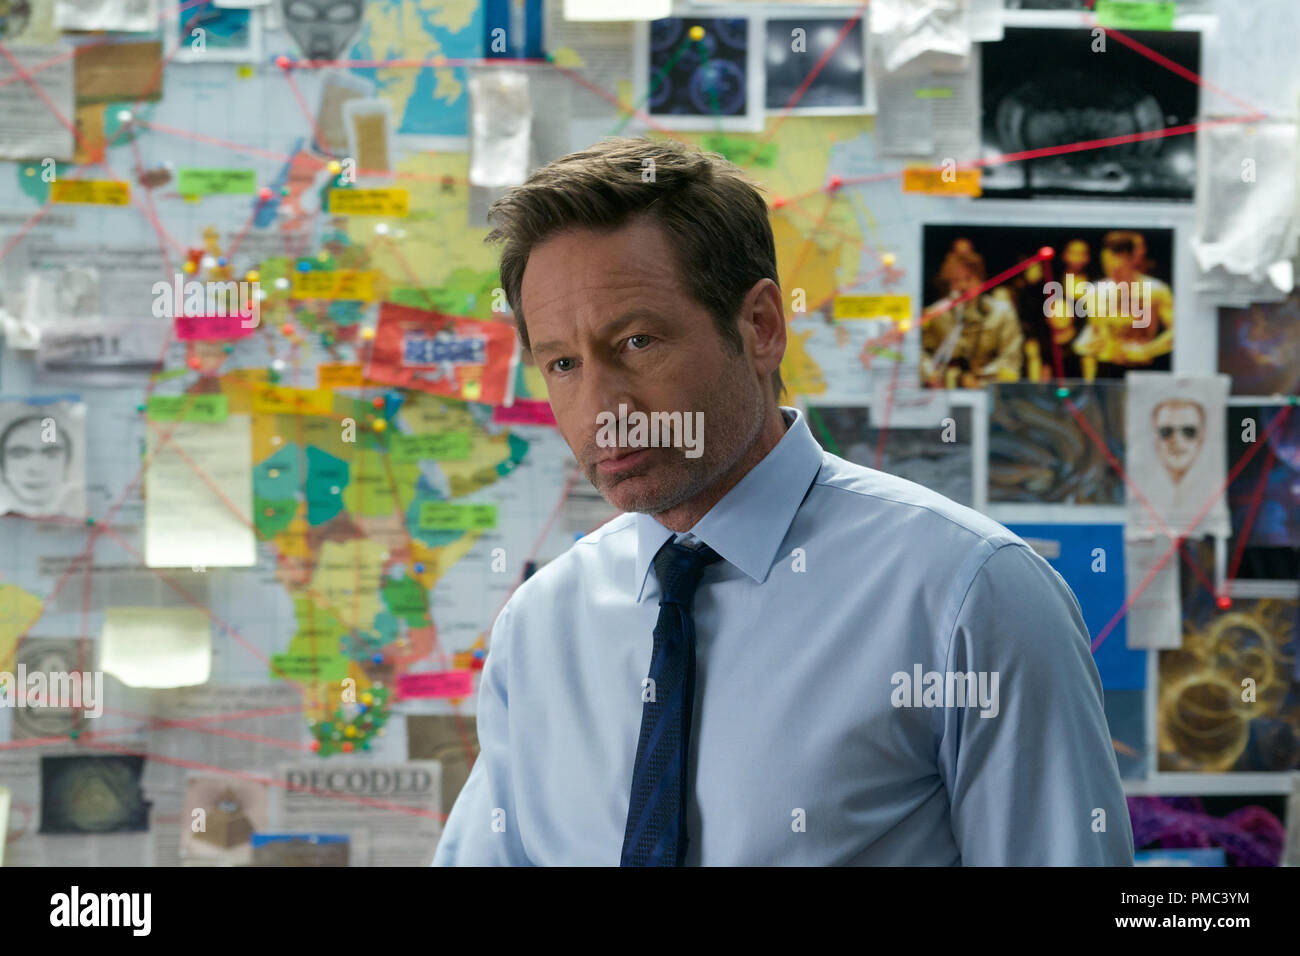 THE X-FILES:  David Duchovny in the 'The Lost Art Of Forehead Sweat' episode of THE X-FILES on Fox. © 2018 Fox Broadcasting Co.  Cr:  Shane Harvey/Fox - Stock Image